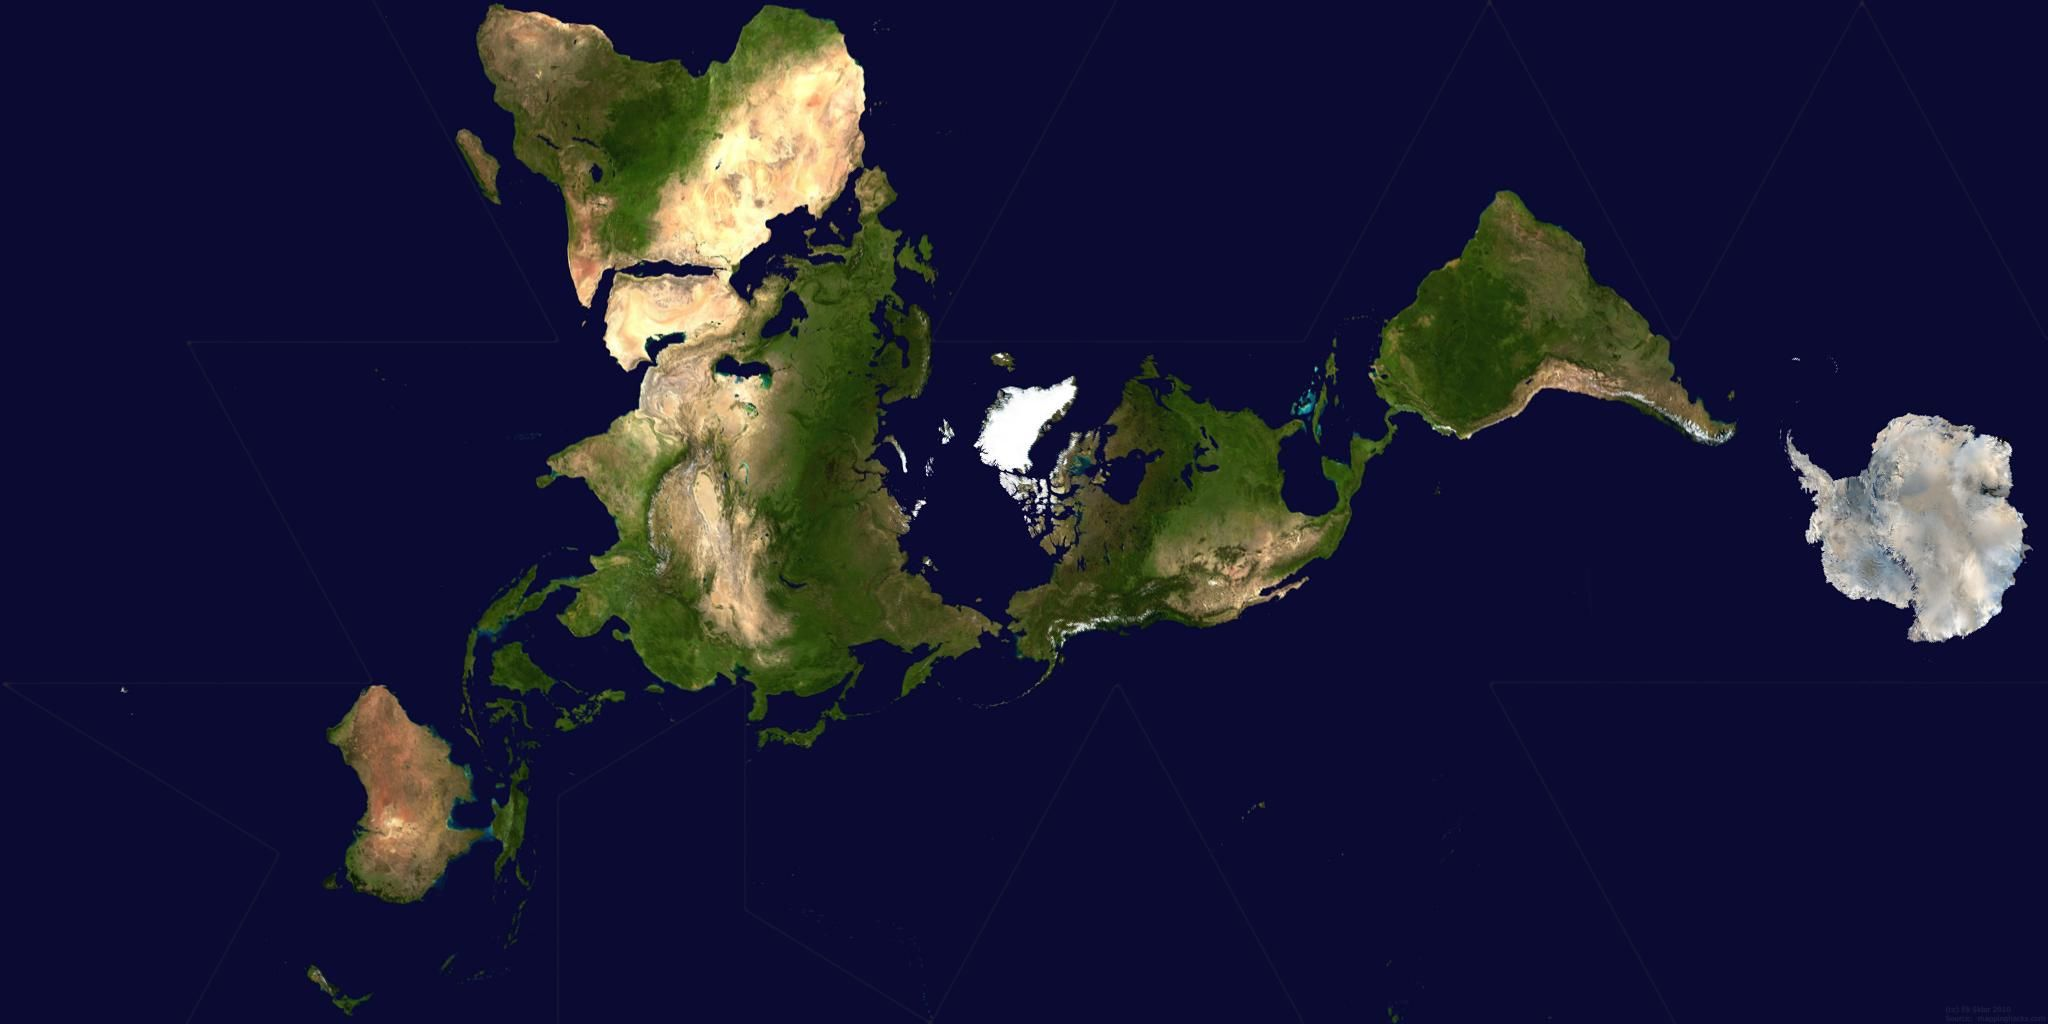 This Wacky World Map Just Won Japan's Biggest Design Award ...